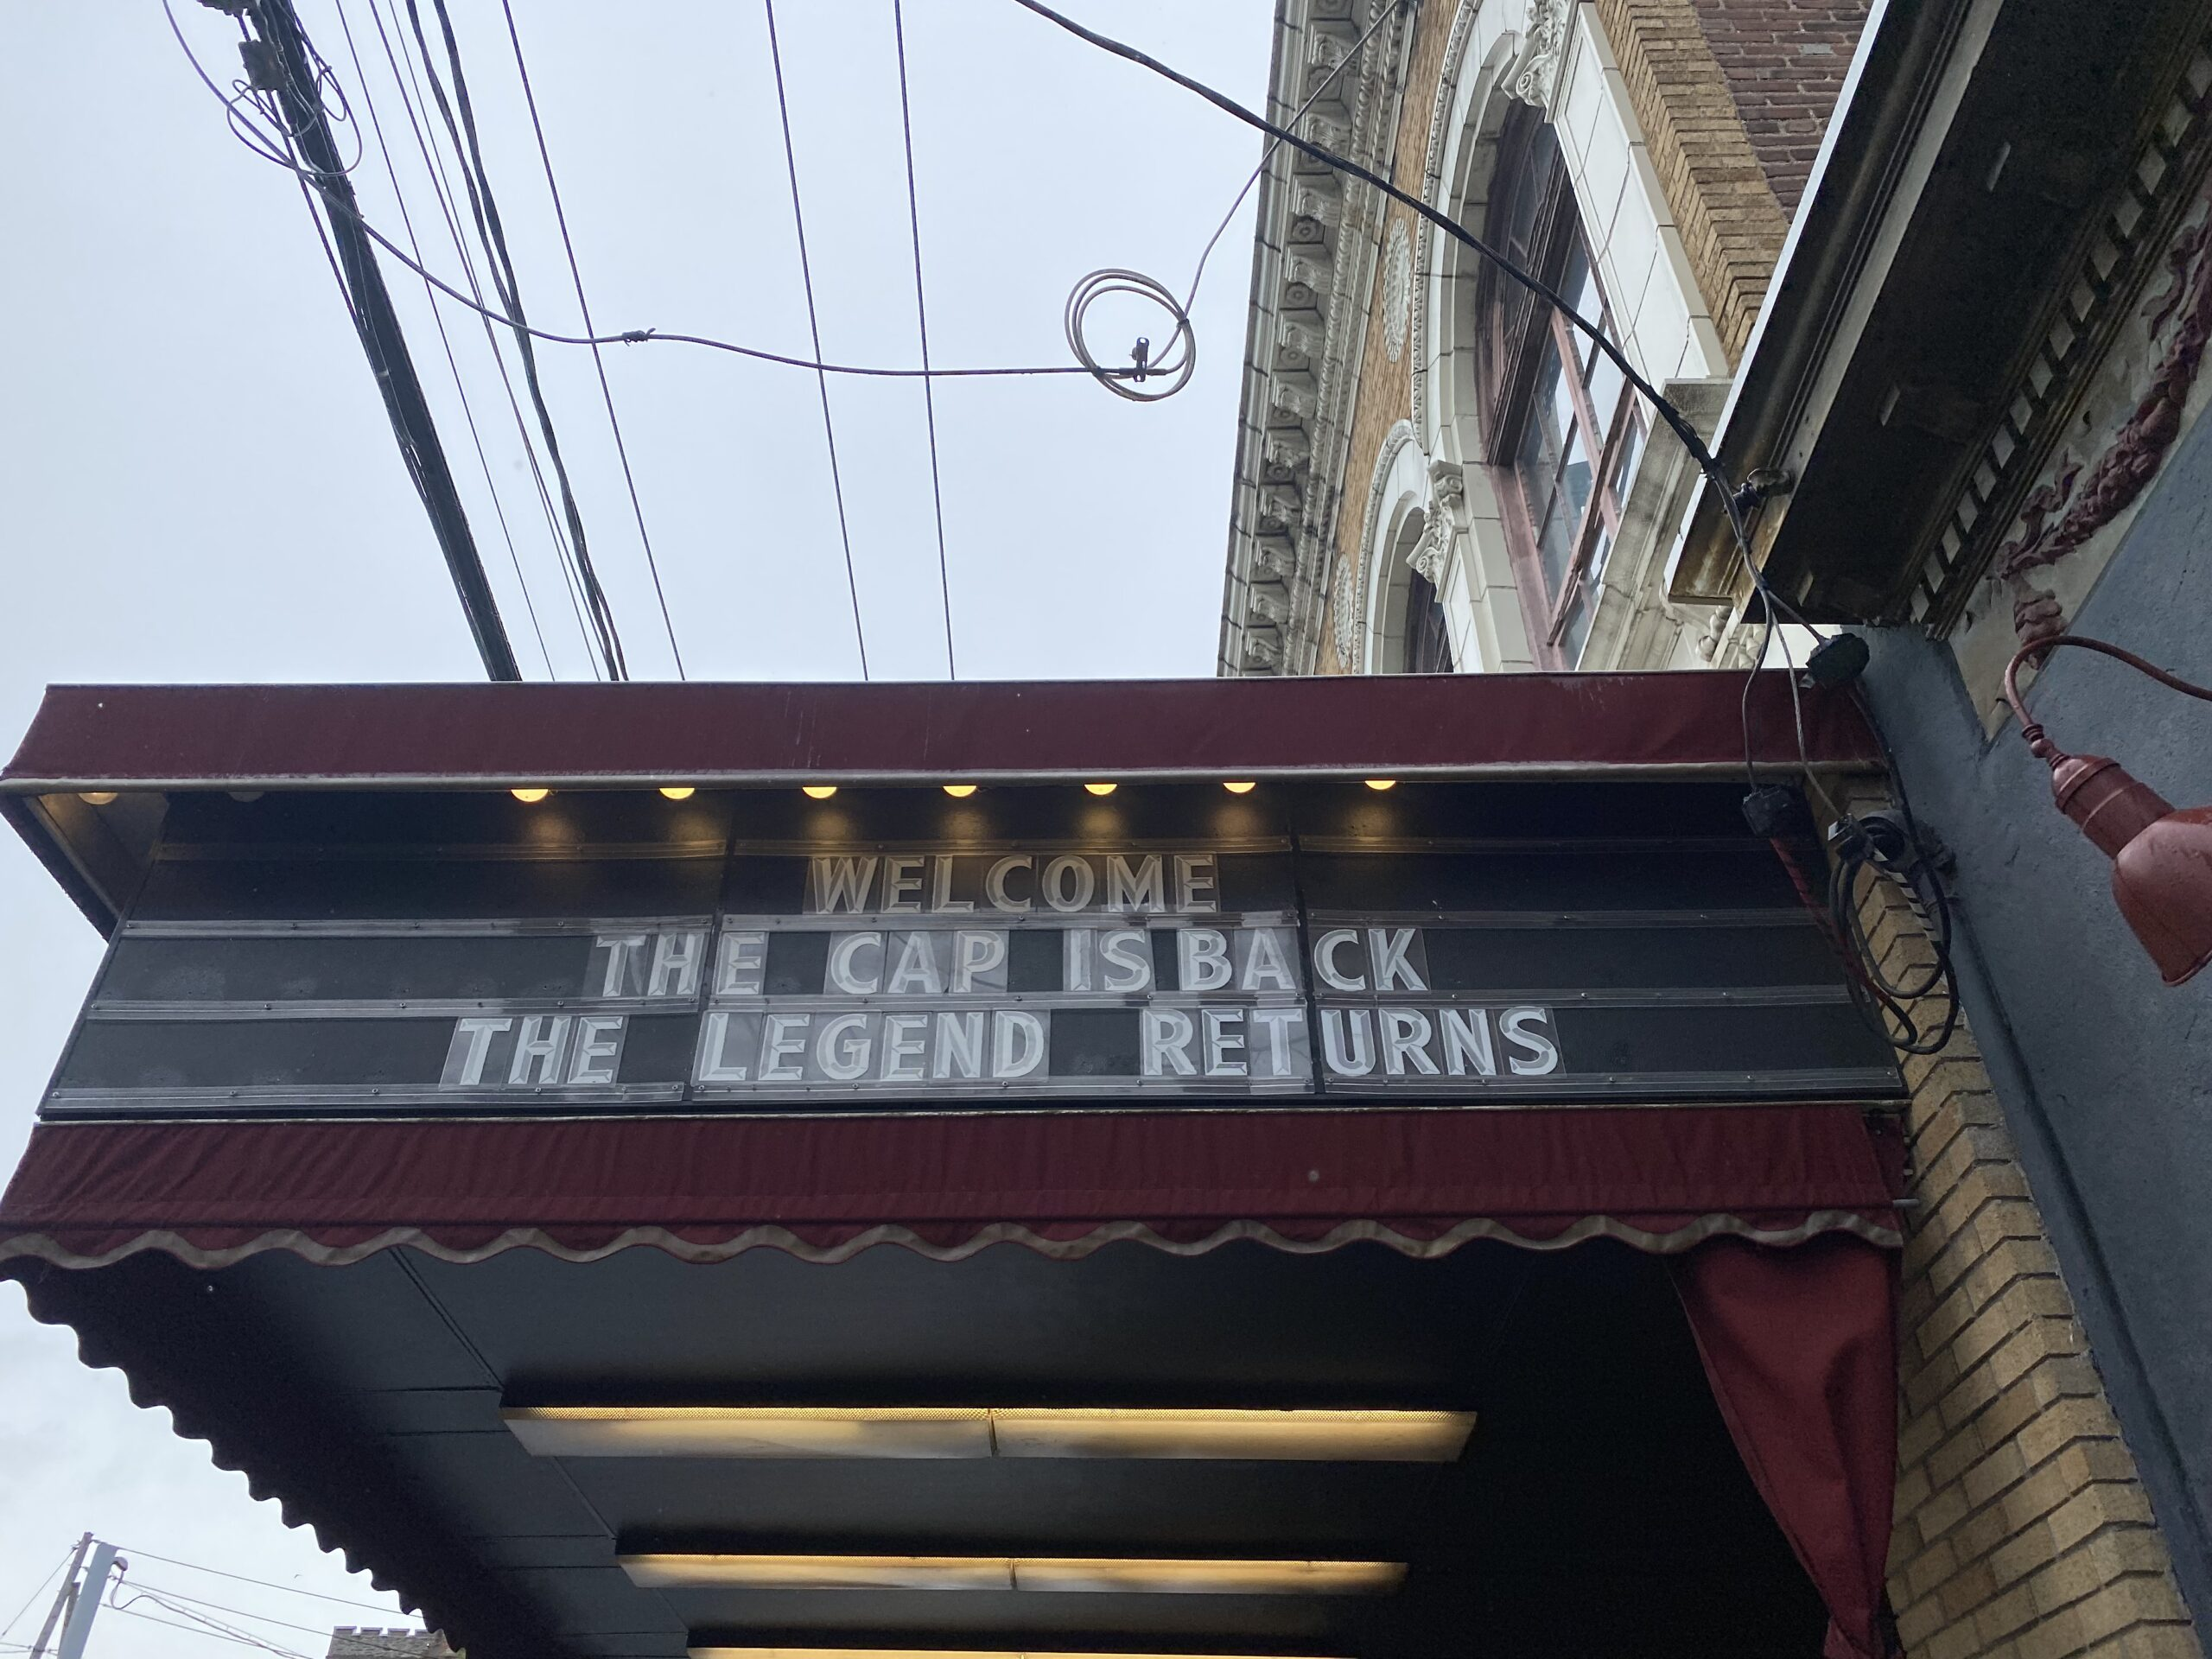 The historic Capital Theatre is ready to re-open with a full line-up of concerts after a long 18 months closure due to COVID.